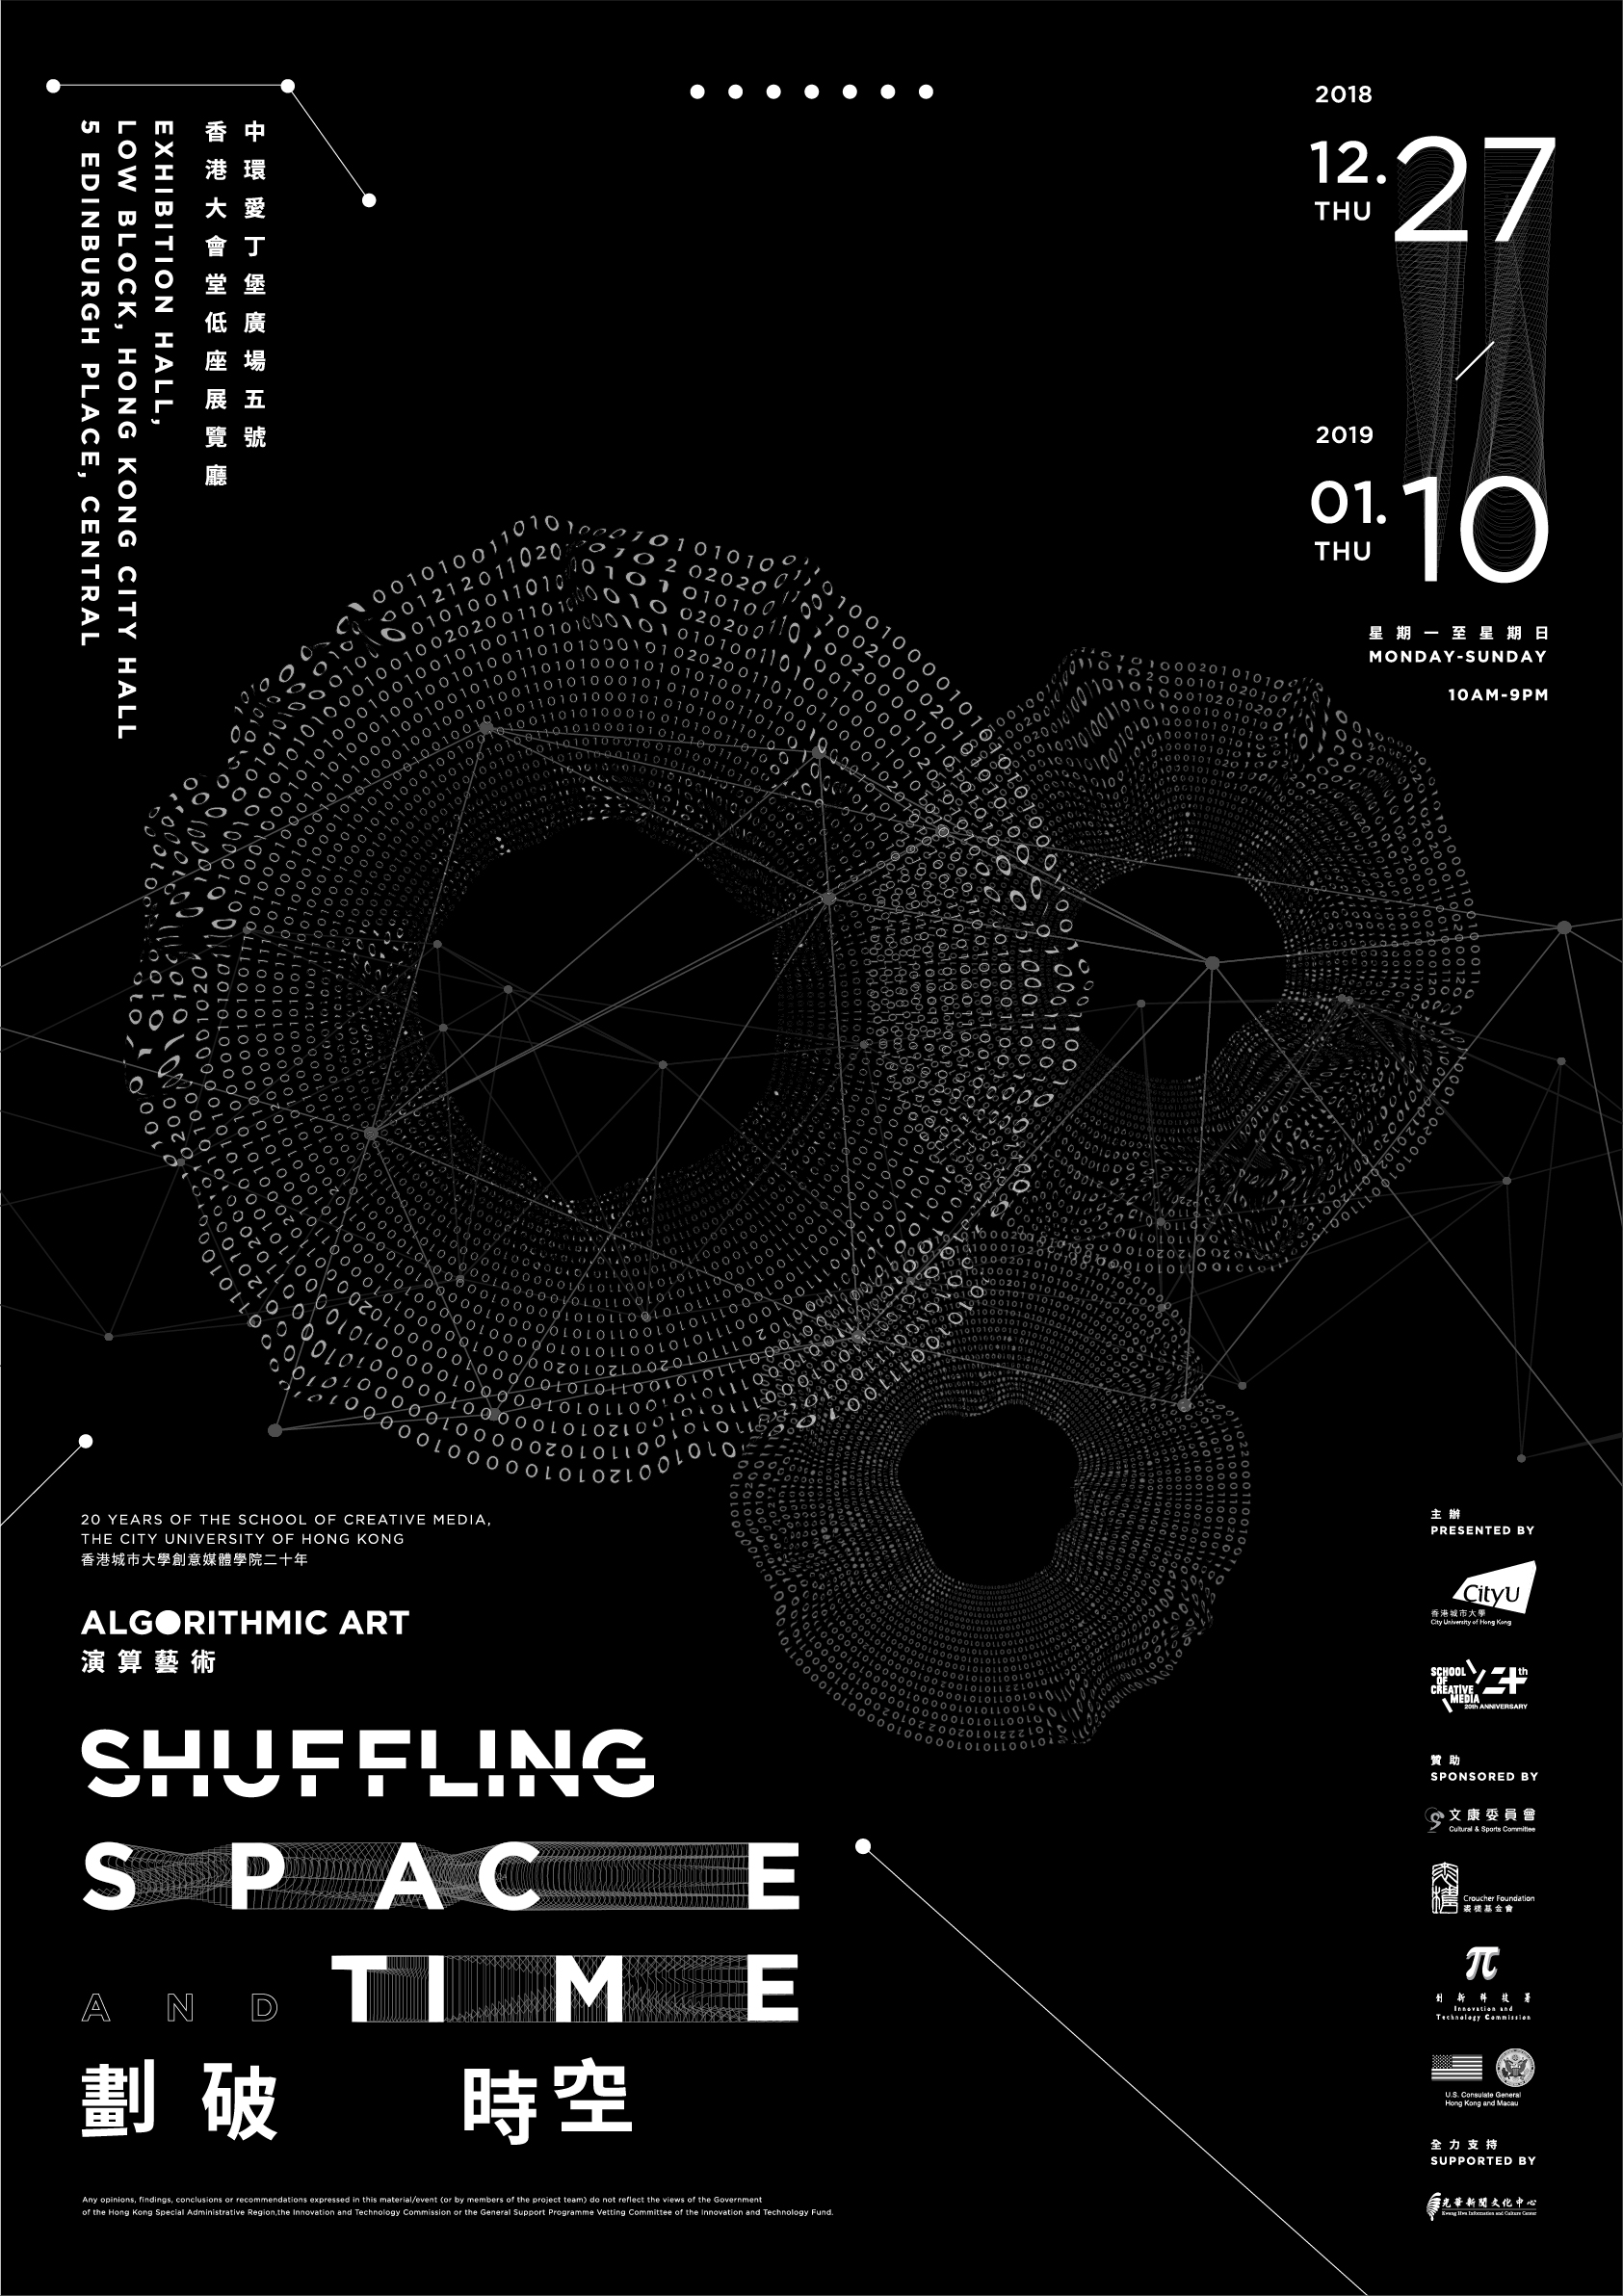 Exhibition: Algorithmic Art: Shuffling Space and Time | Art